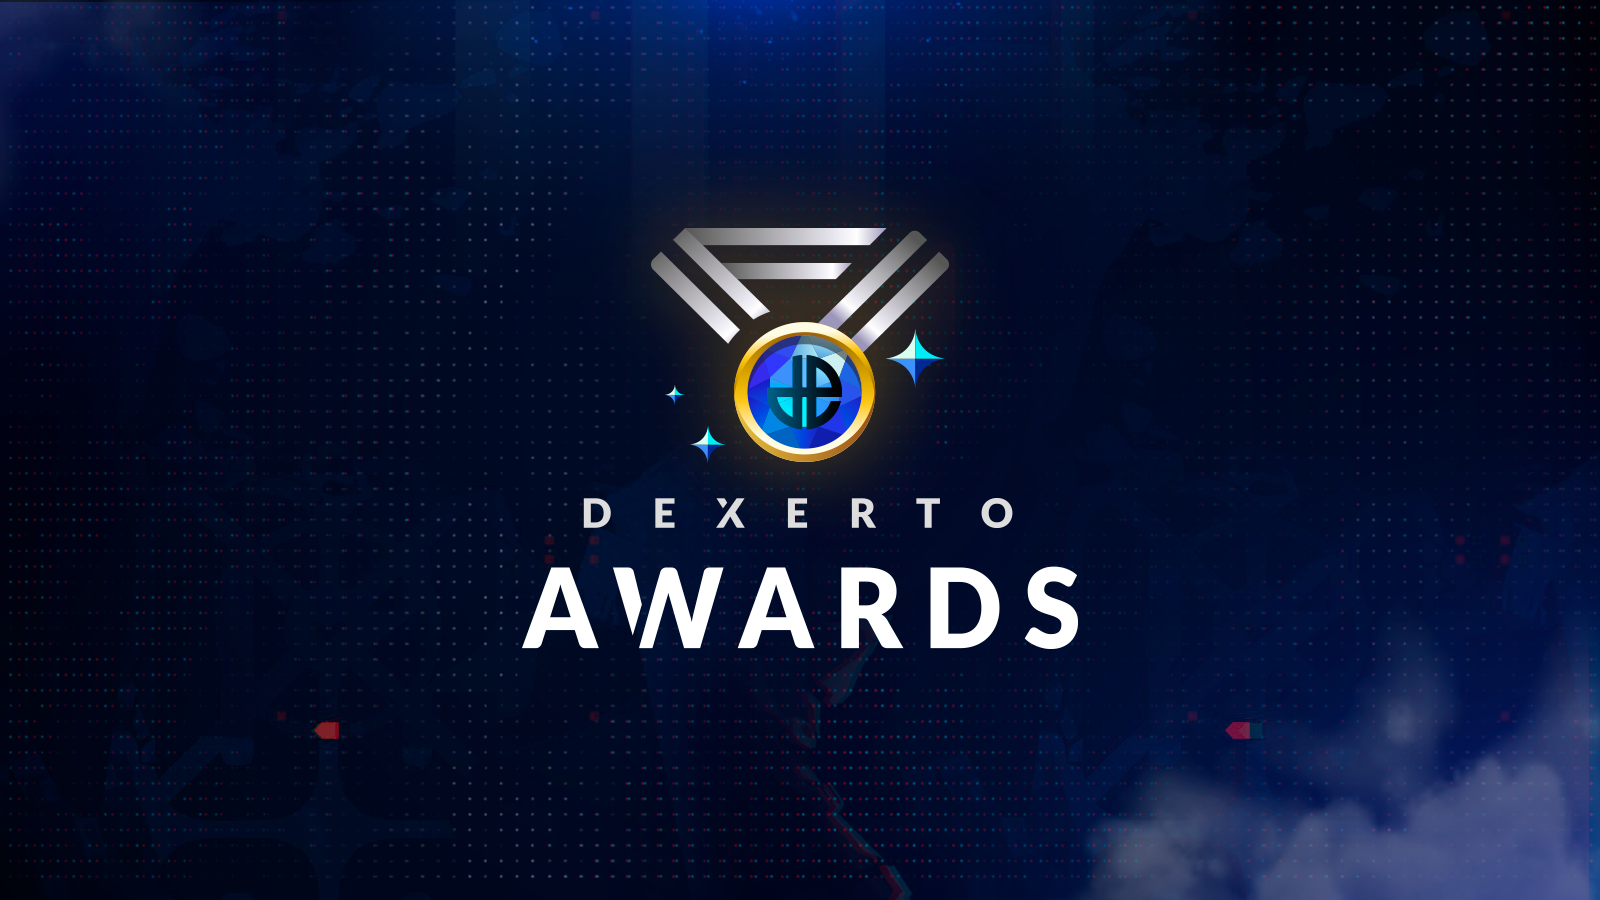 Dexerto Awards 2020 feature image